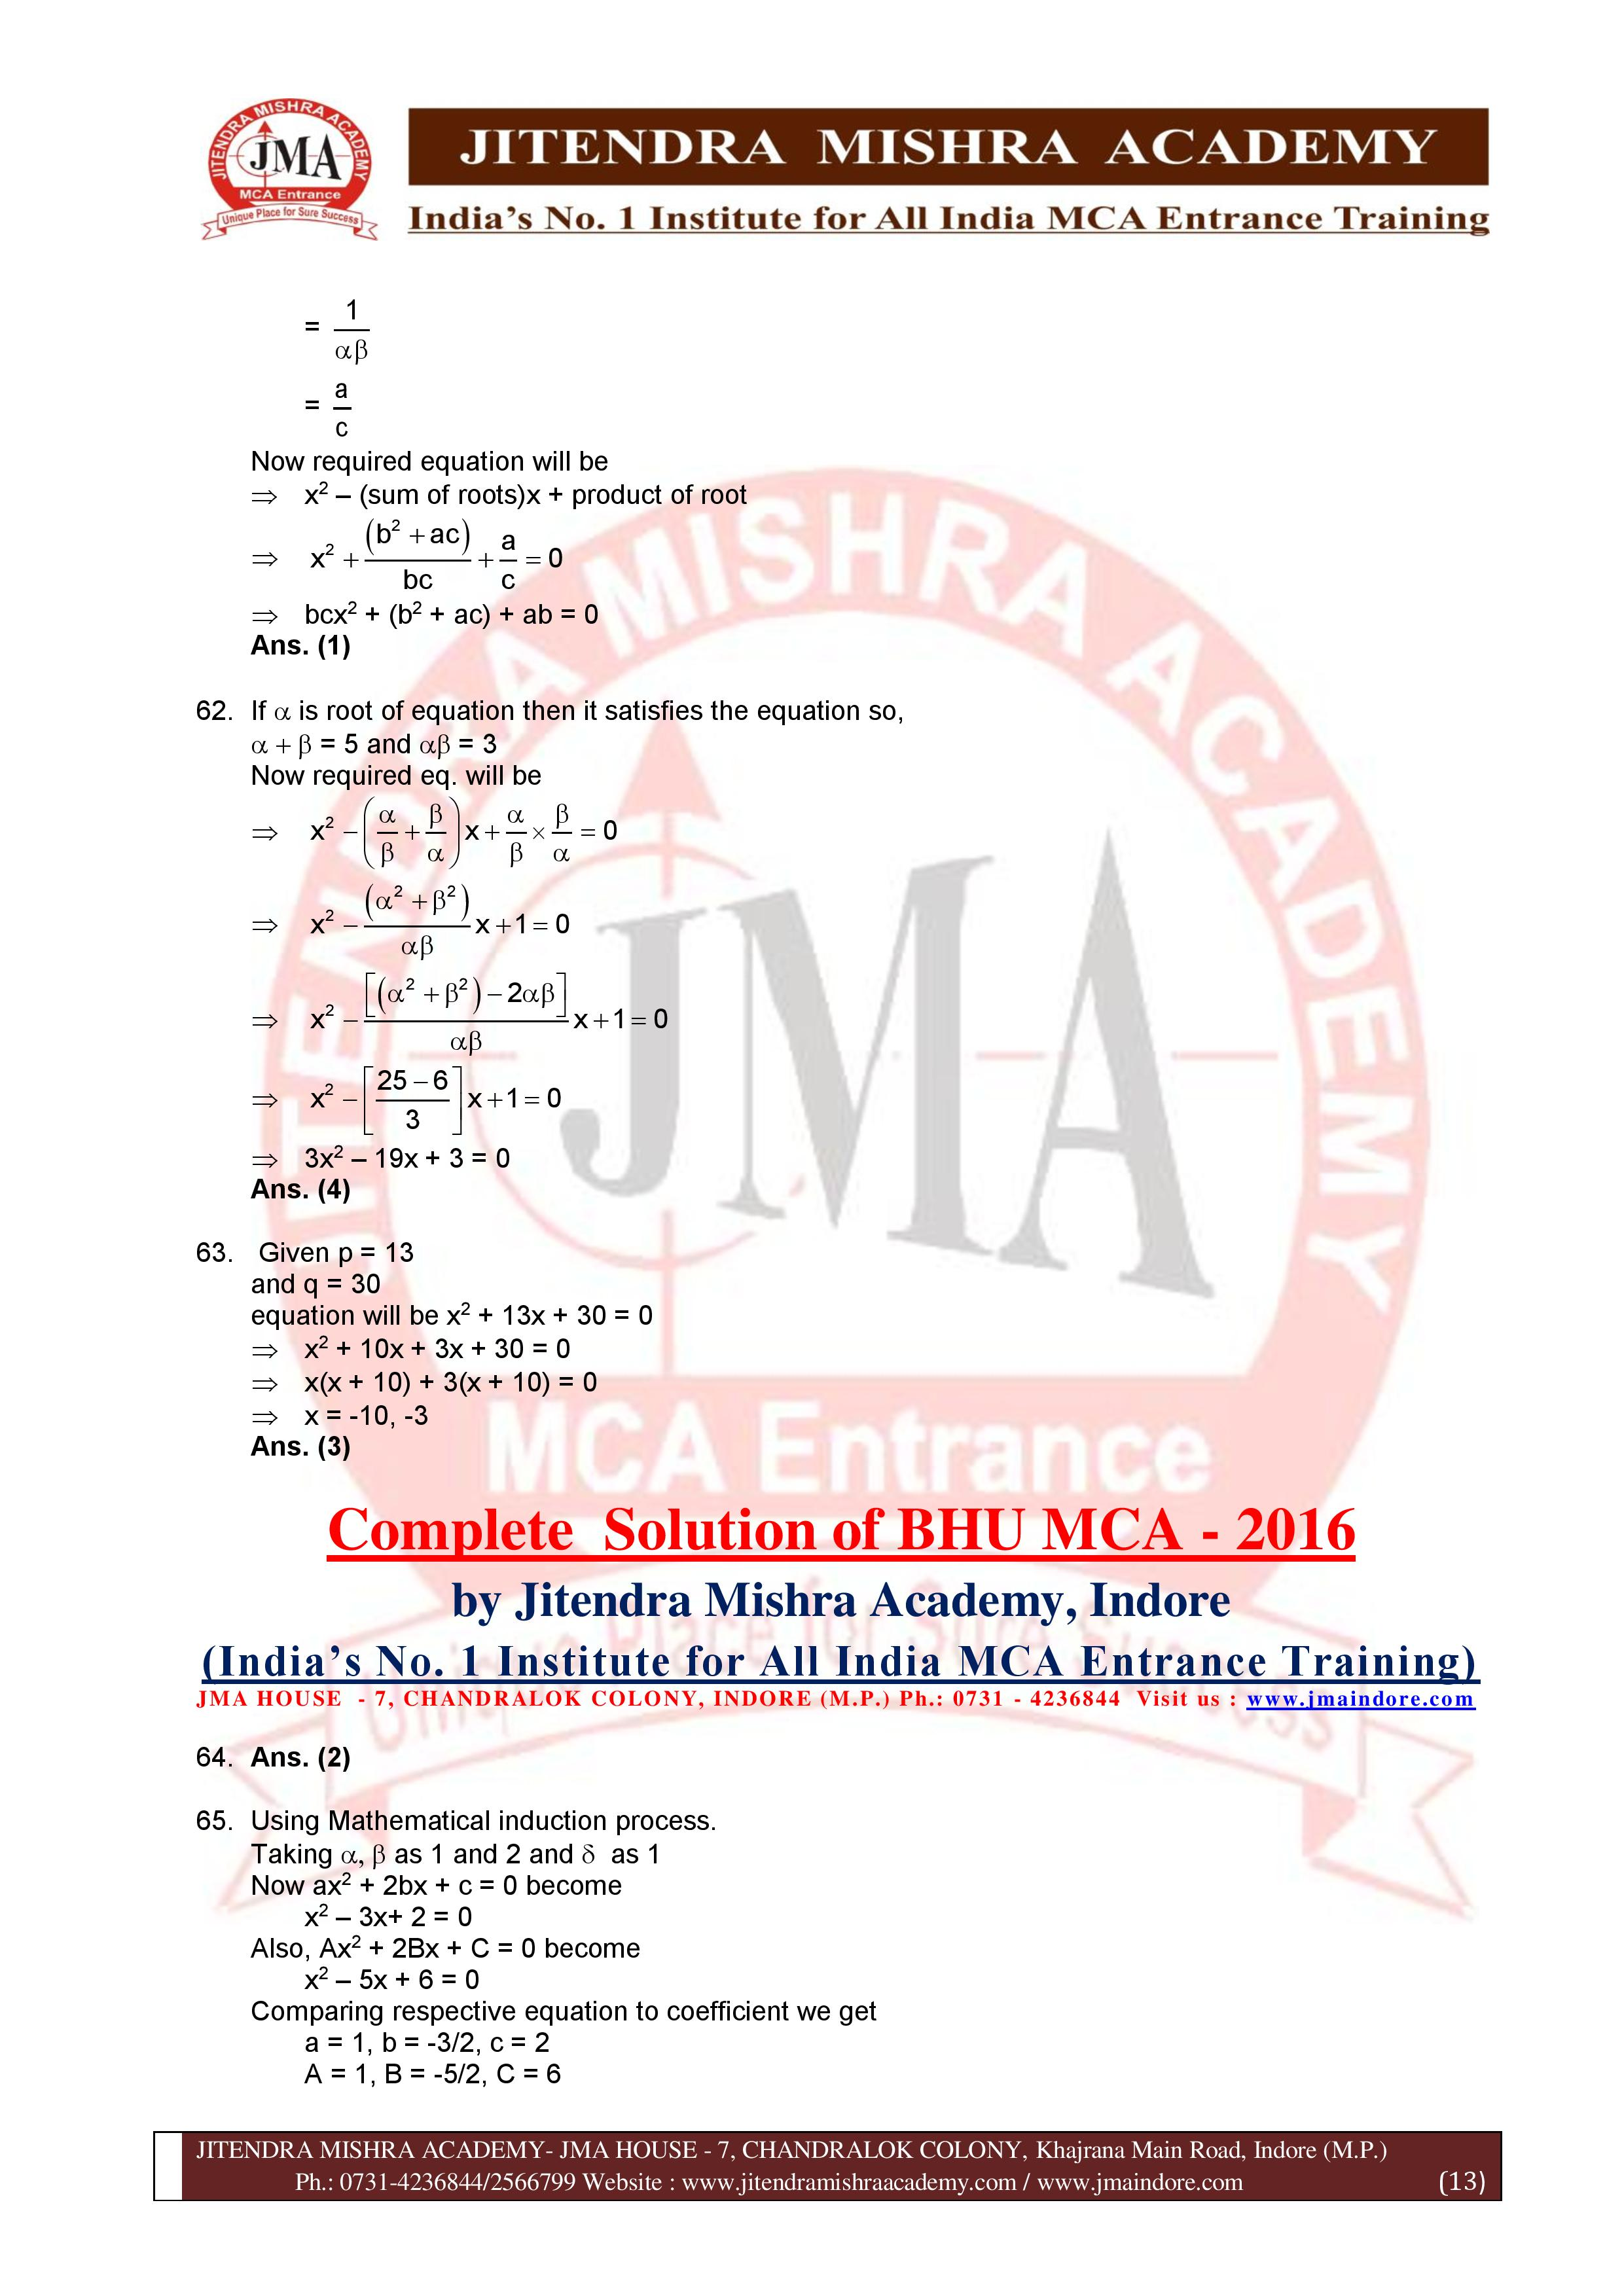 BHU 2016 SOLUTION (SET - 1)-page-013